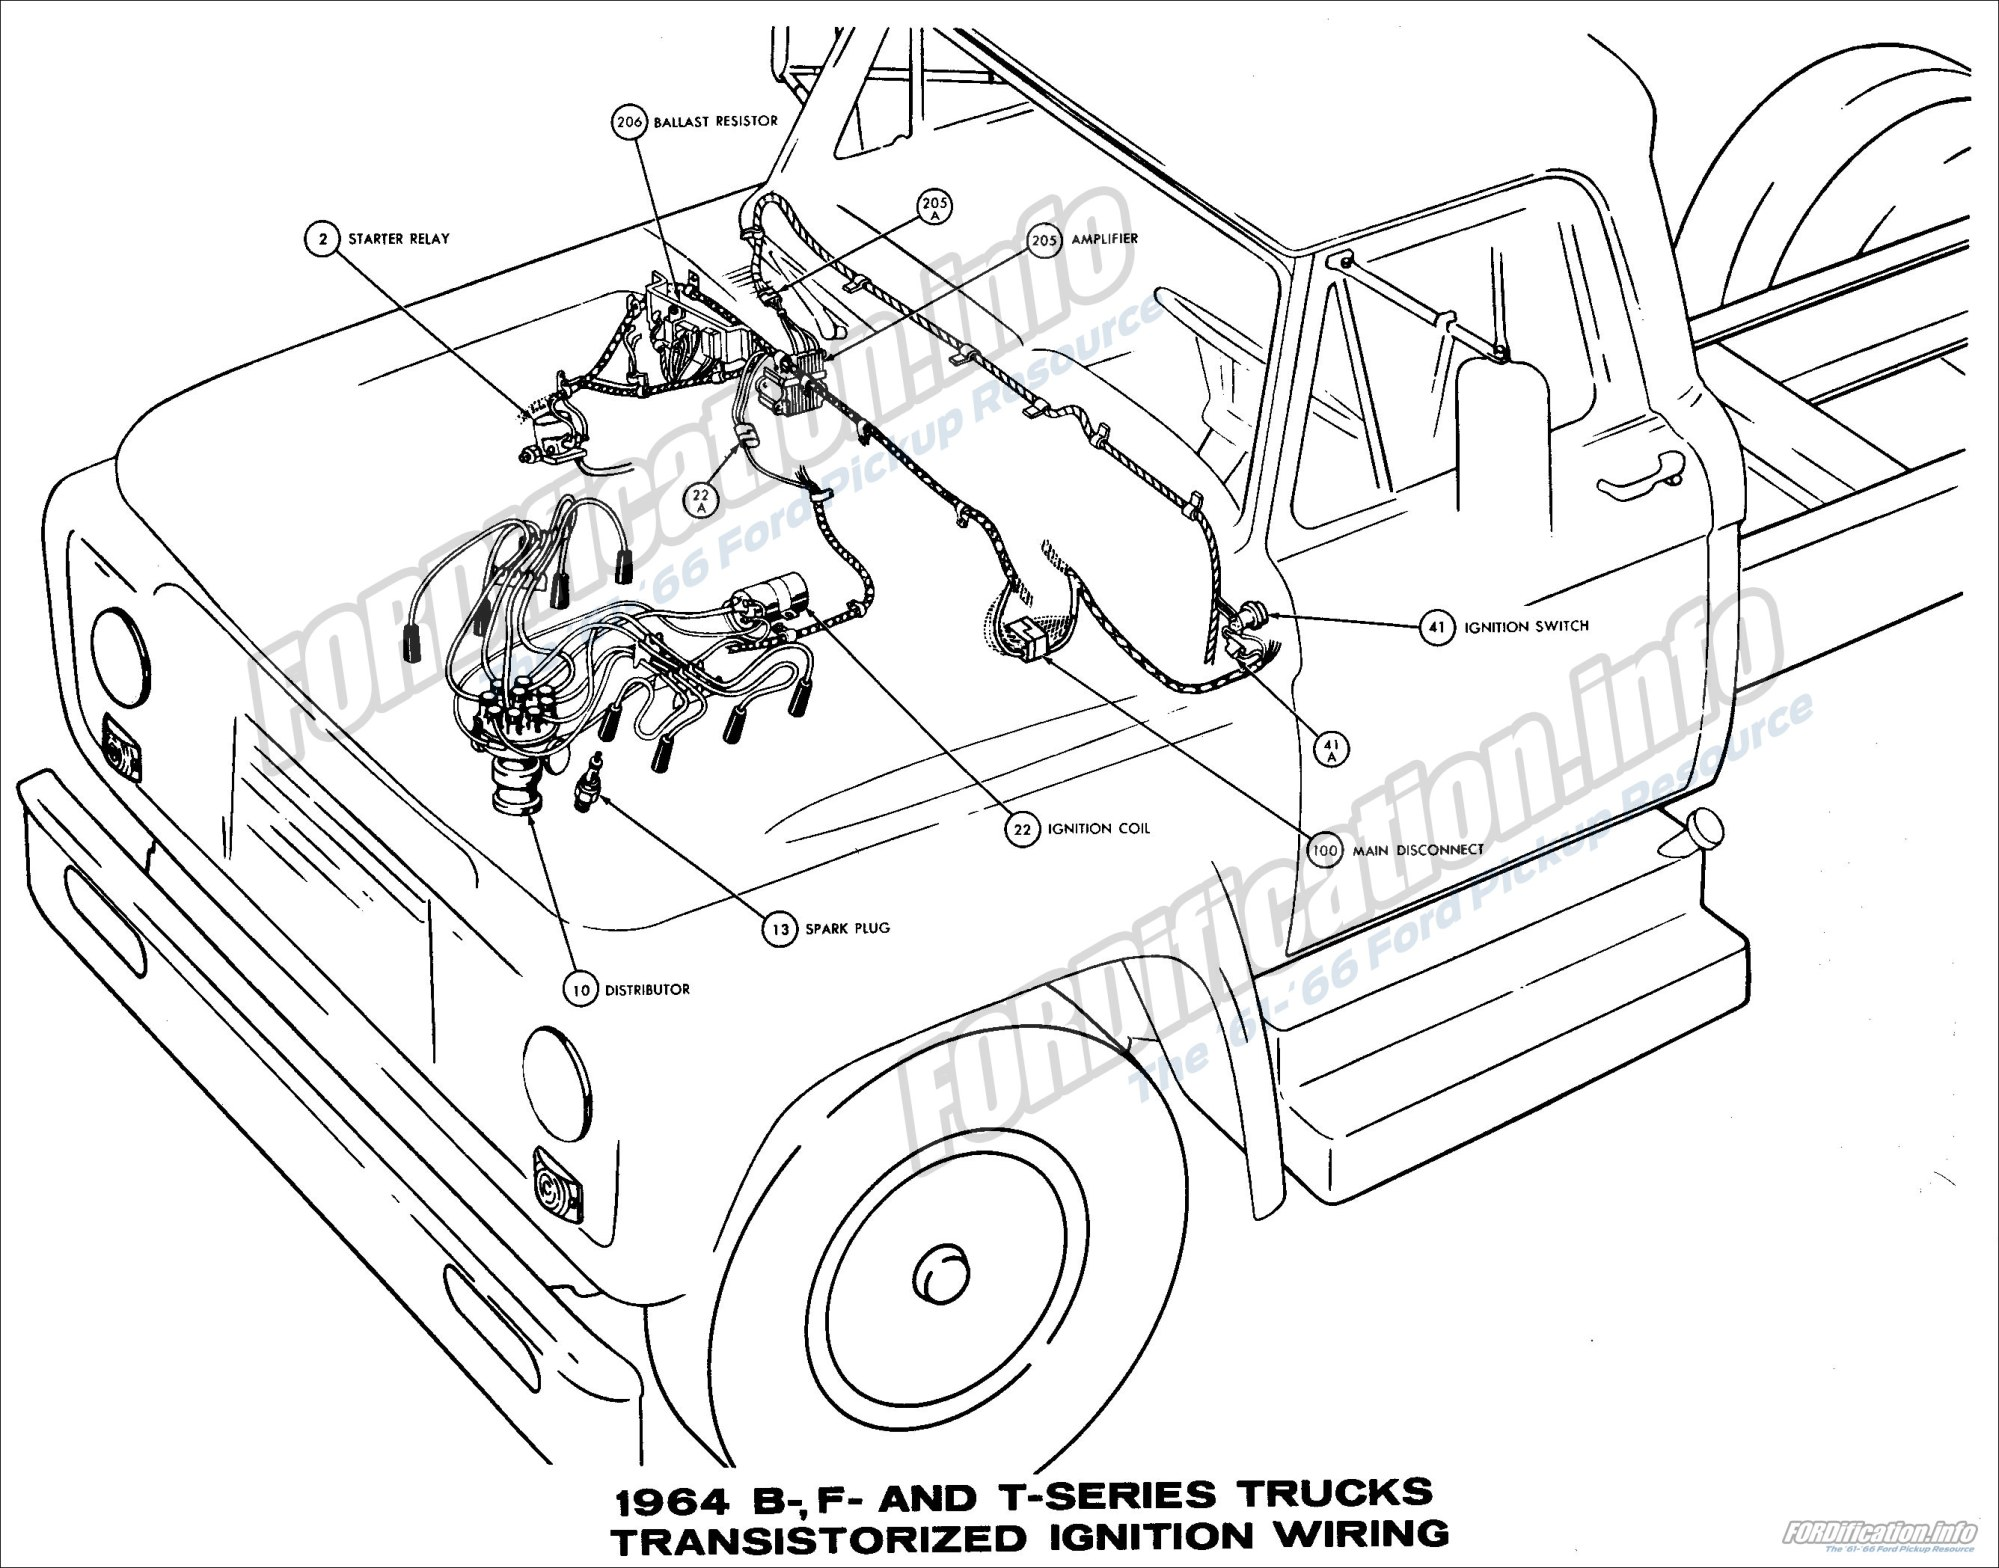 hight resolution of 1964 ford truck wiring diagrams fordification info the u002761 u0027661964 b f and